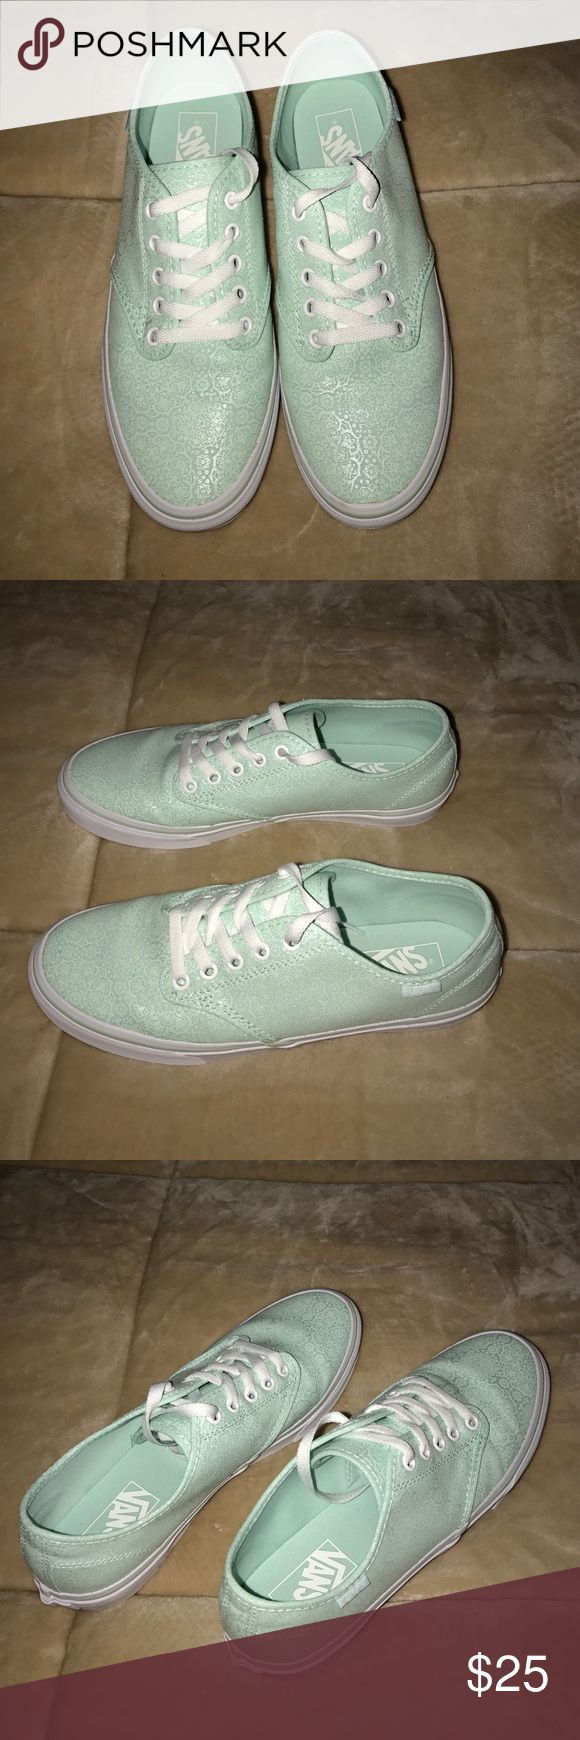 Mint Green Vans - size 9 - LIKE NEW These awesome pair of mint green Vans are a size 9.  These shoes have an embossed material and have only been worn one time!! From a non smoking home and ready to ship! Vans Shoes Sneakers